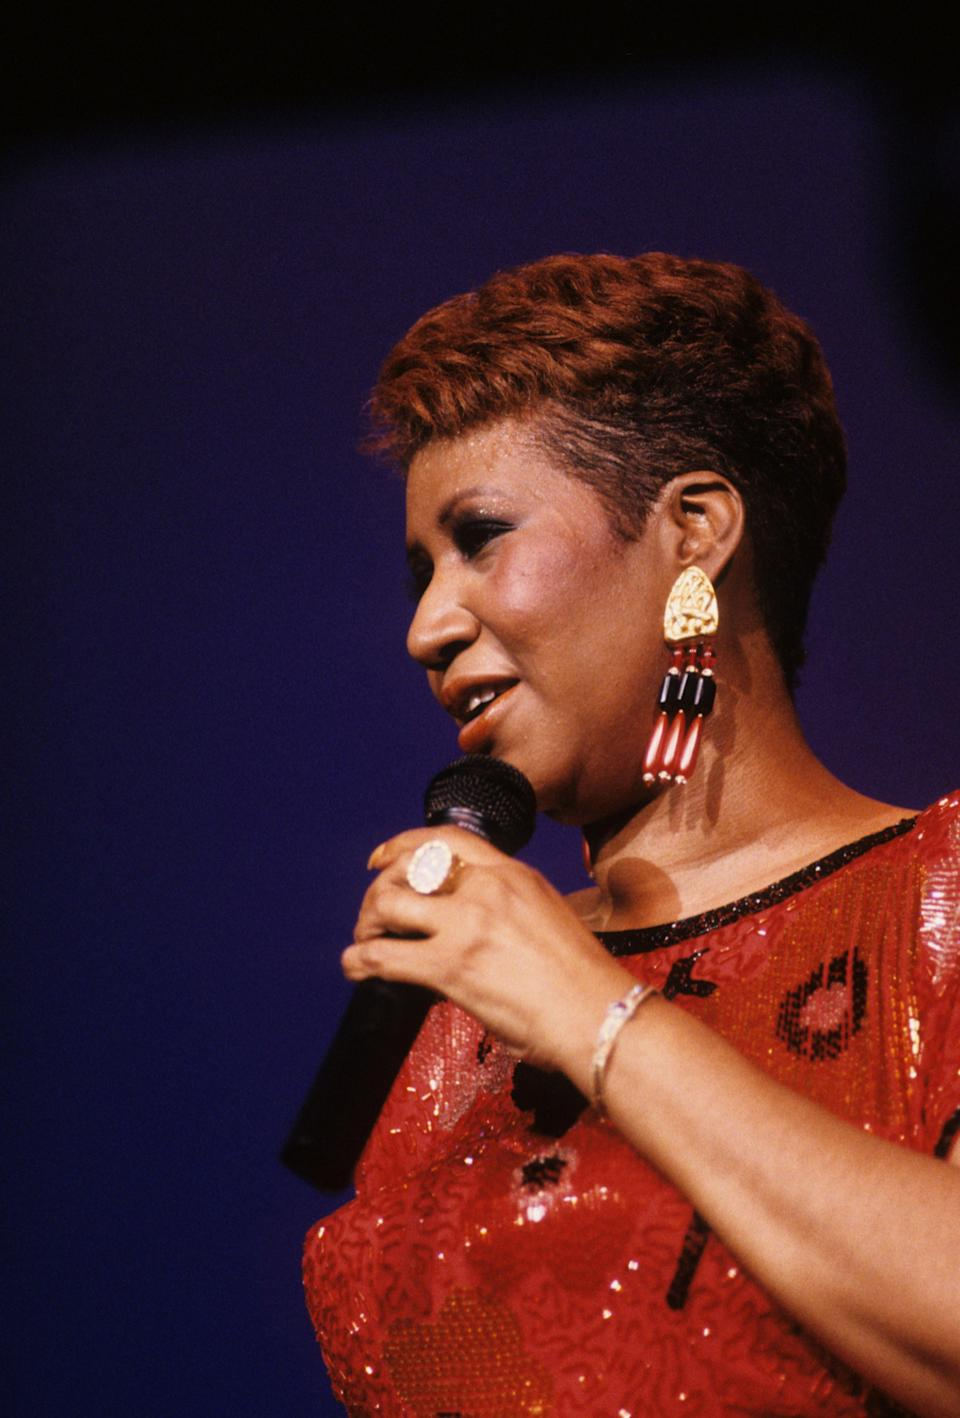 <p>Aretha Franklin wears a red sequin top and statement beaded tassel earrings while performing at a casino in Atlantic City, N.J. (Photo by Waring Abbott/Getty Images) </p>